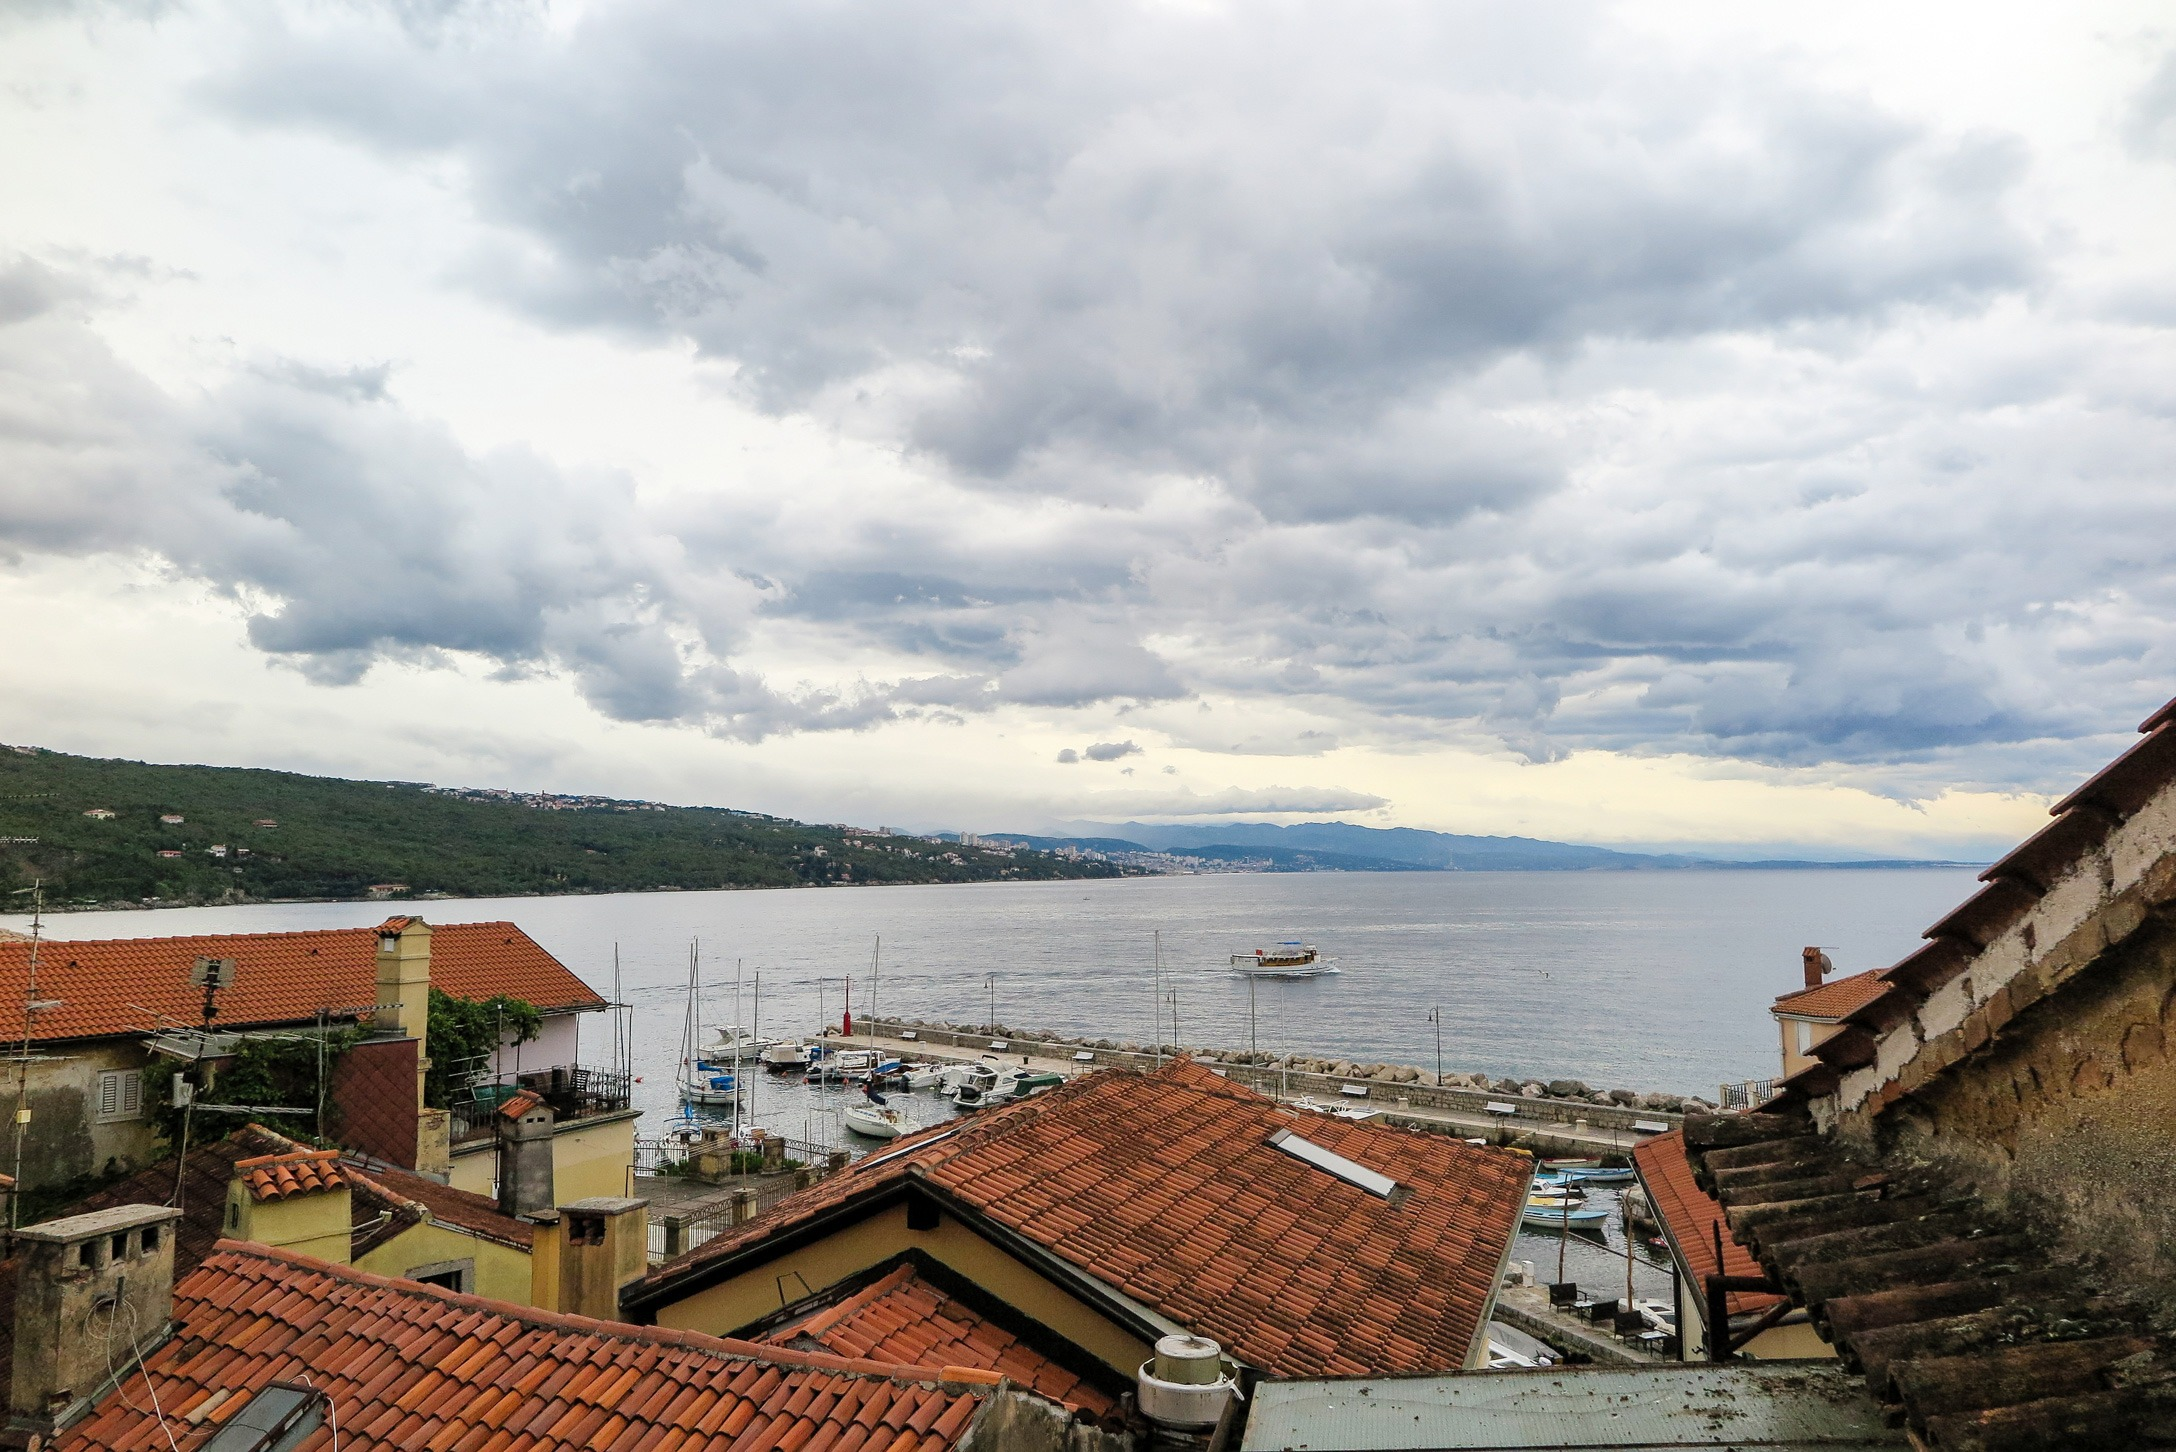 Beautiful cloudy morning in Volosko, Opatija, as seen from a balcony